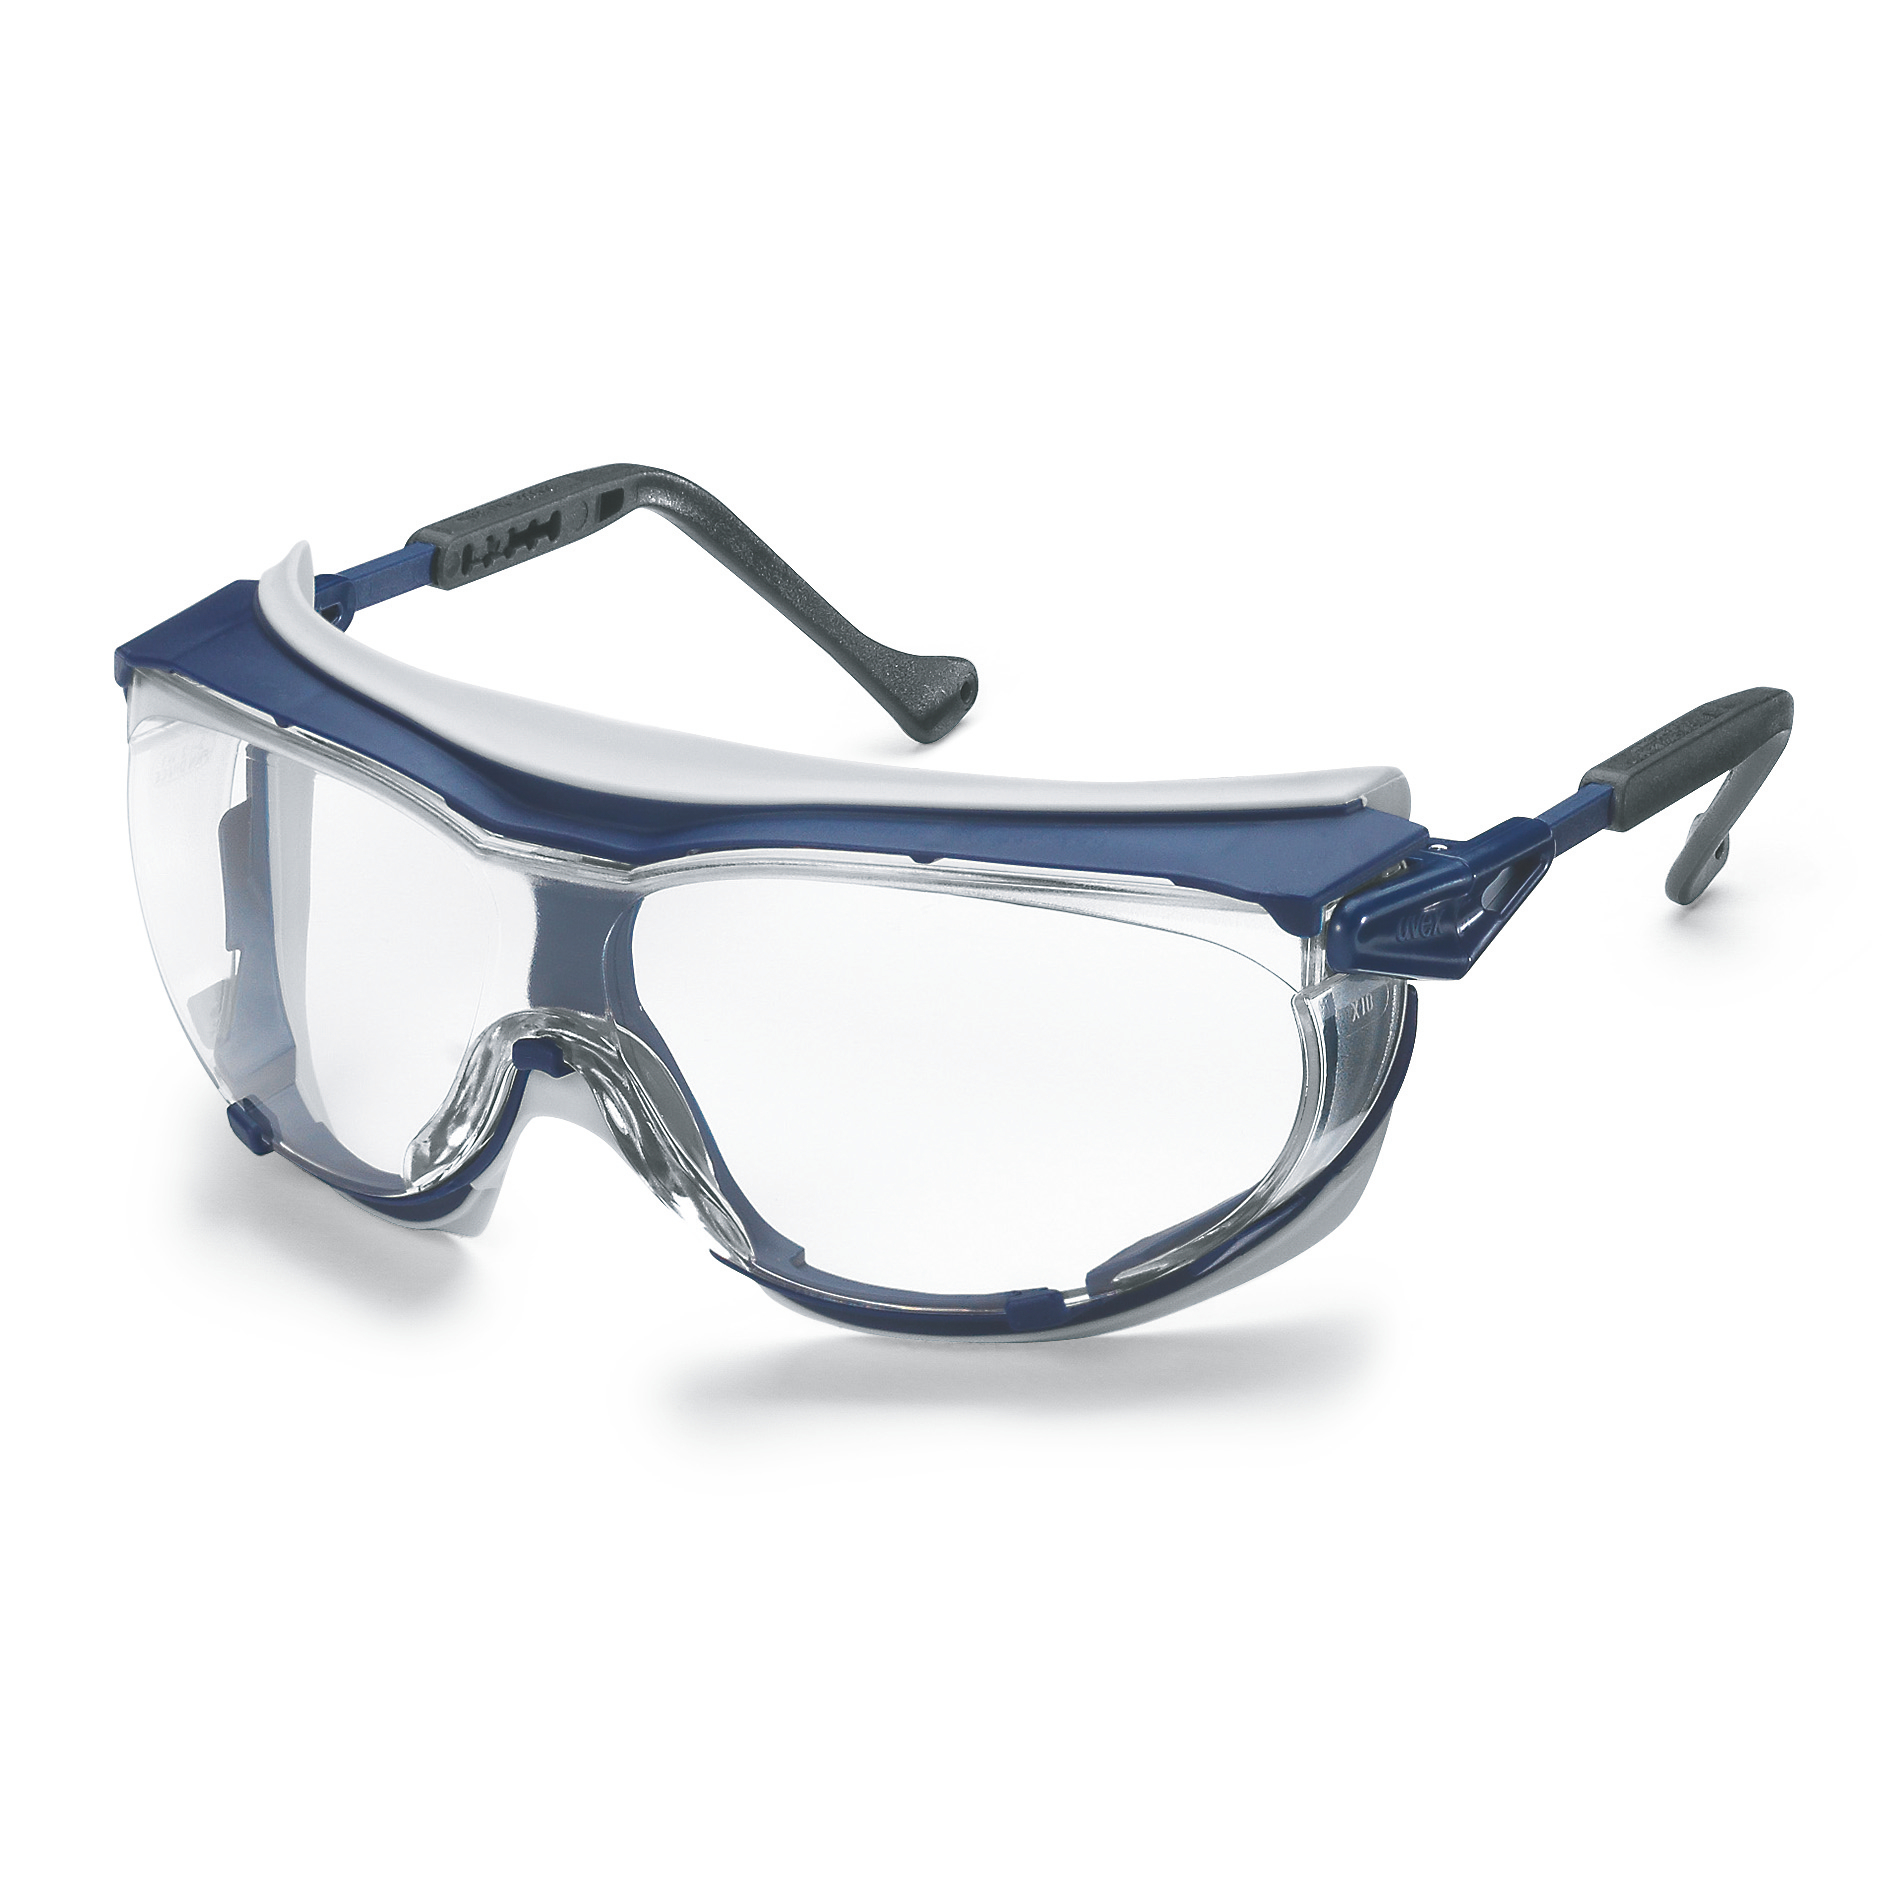 Lunettes de protection à branches uvex skyguard NT   Protection des yeux    uvex safety 648d95950479